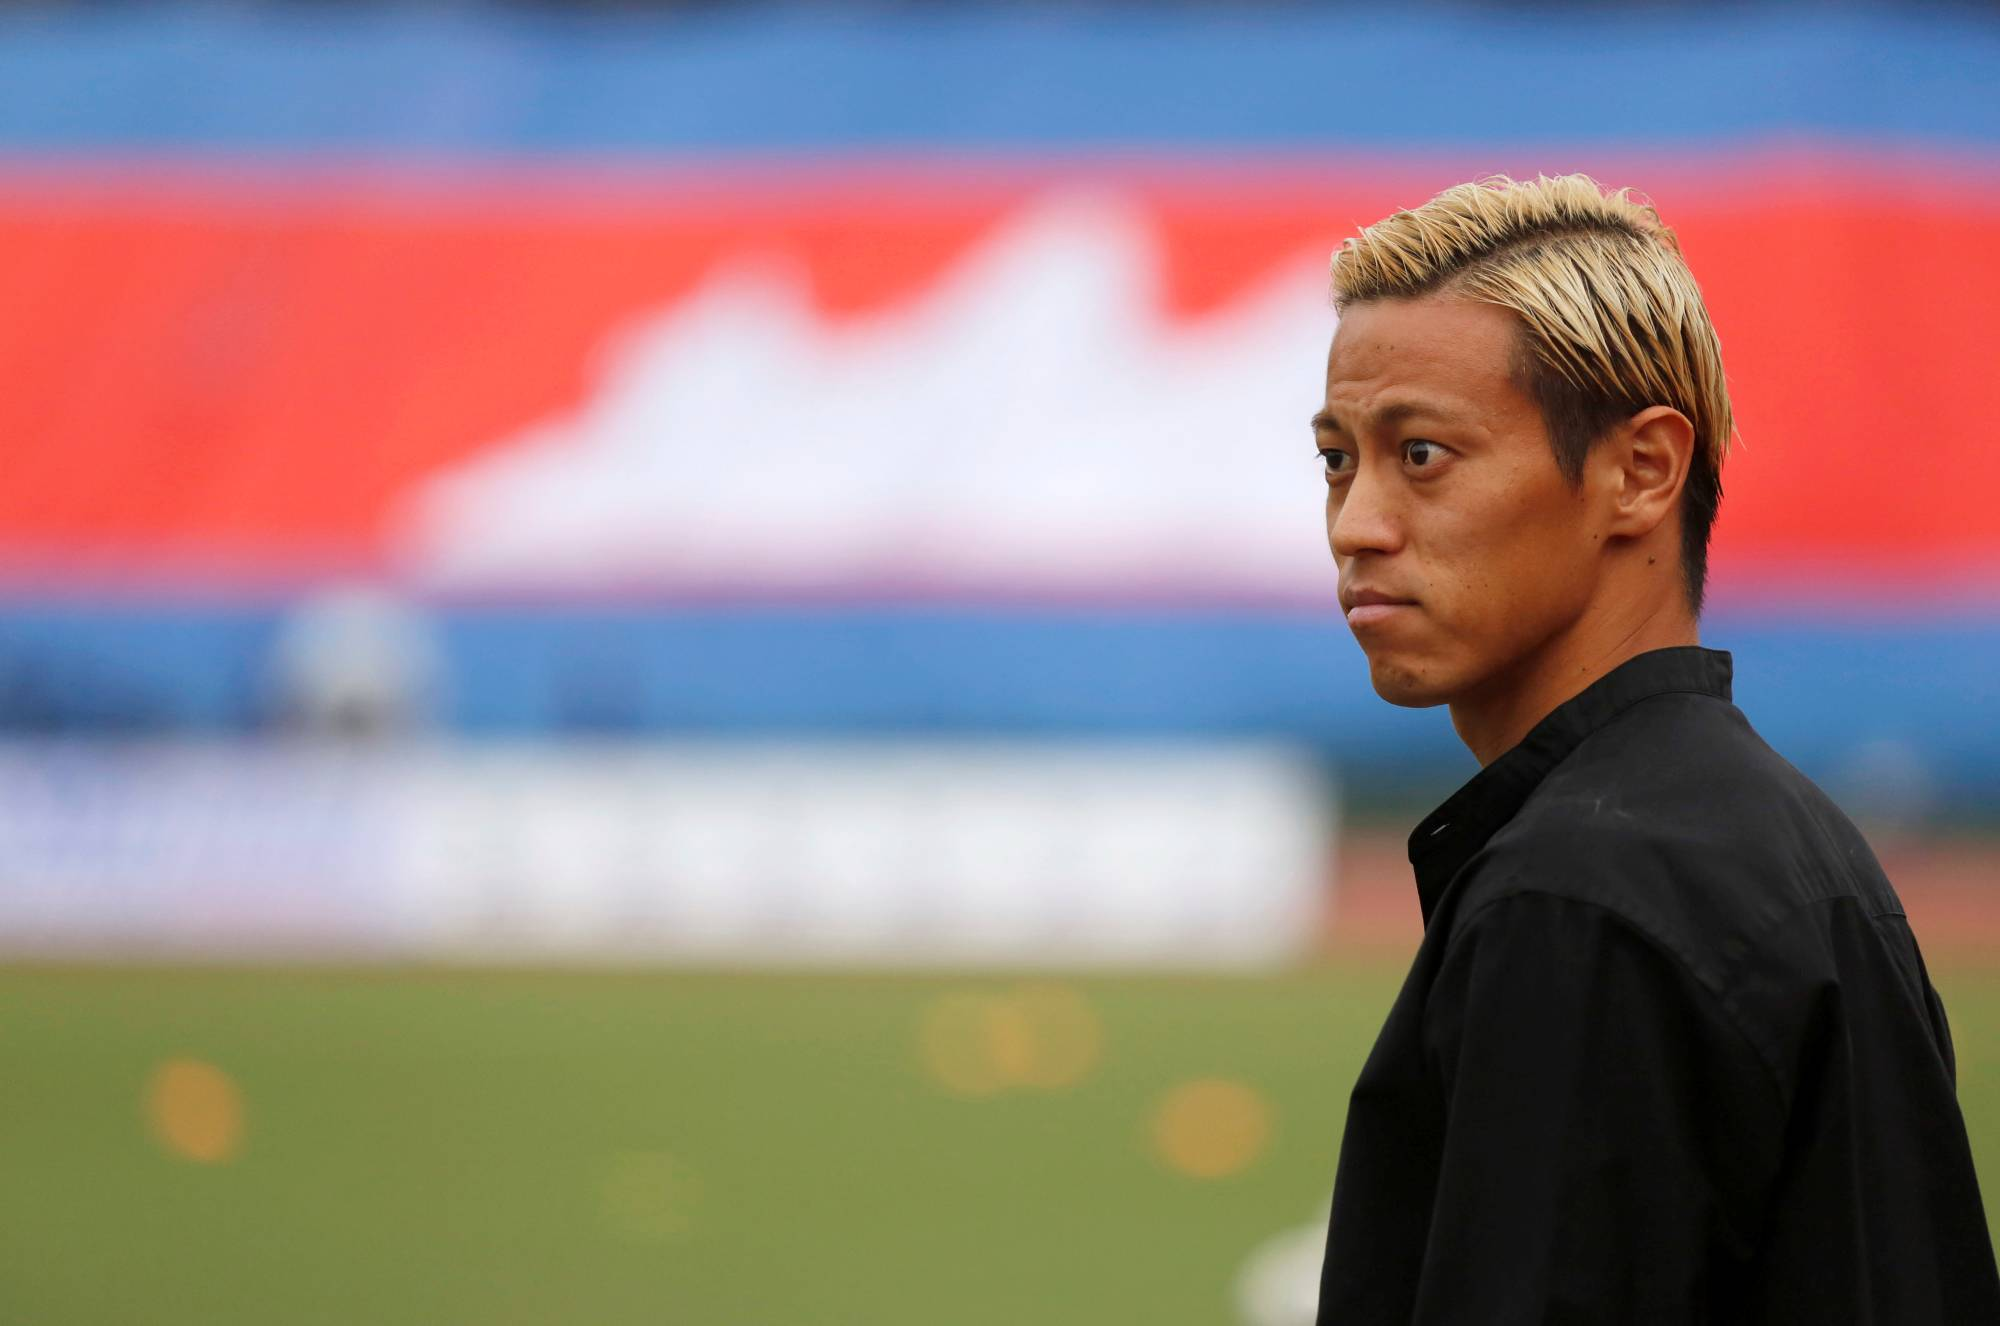 Lithuania will mark Keisuke Honda's eighth overseas stop as a player following recent stints in Azerbaijan and Brazil.   REUTERS